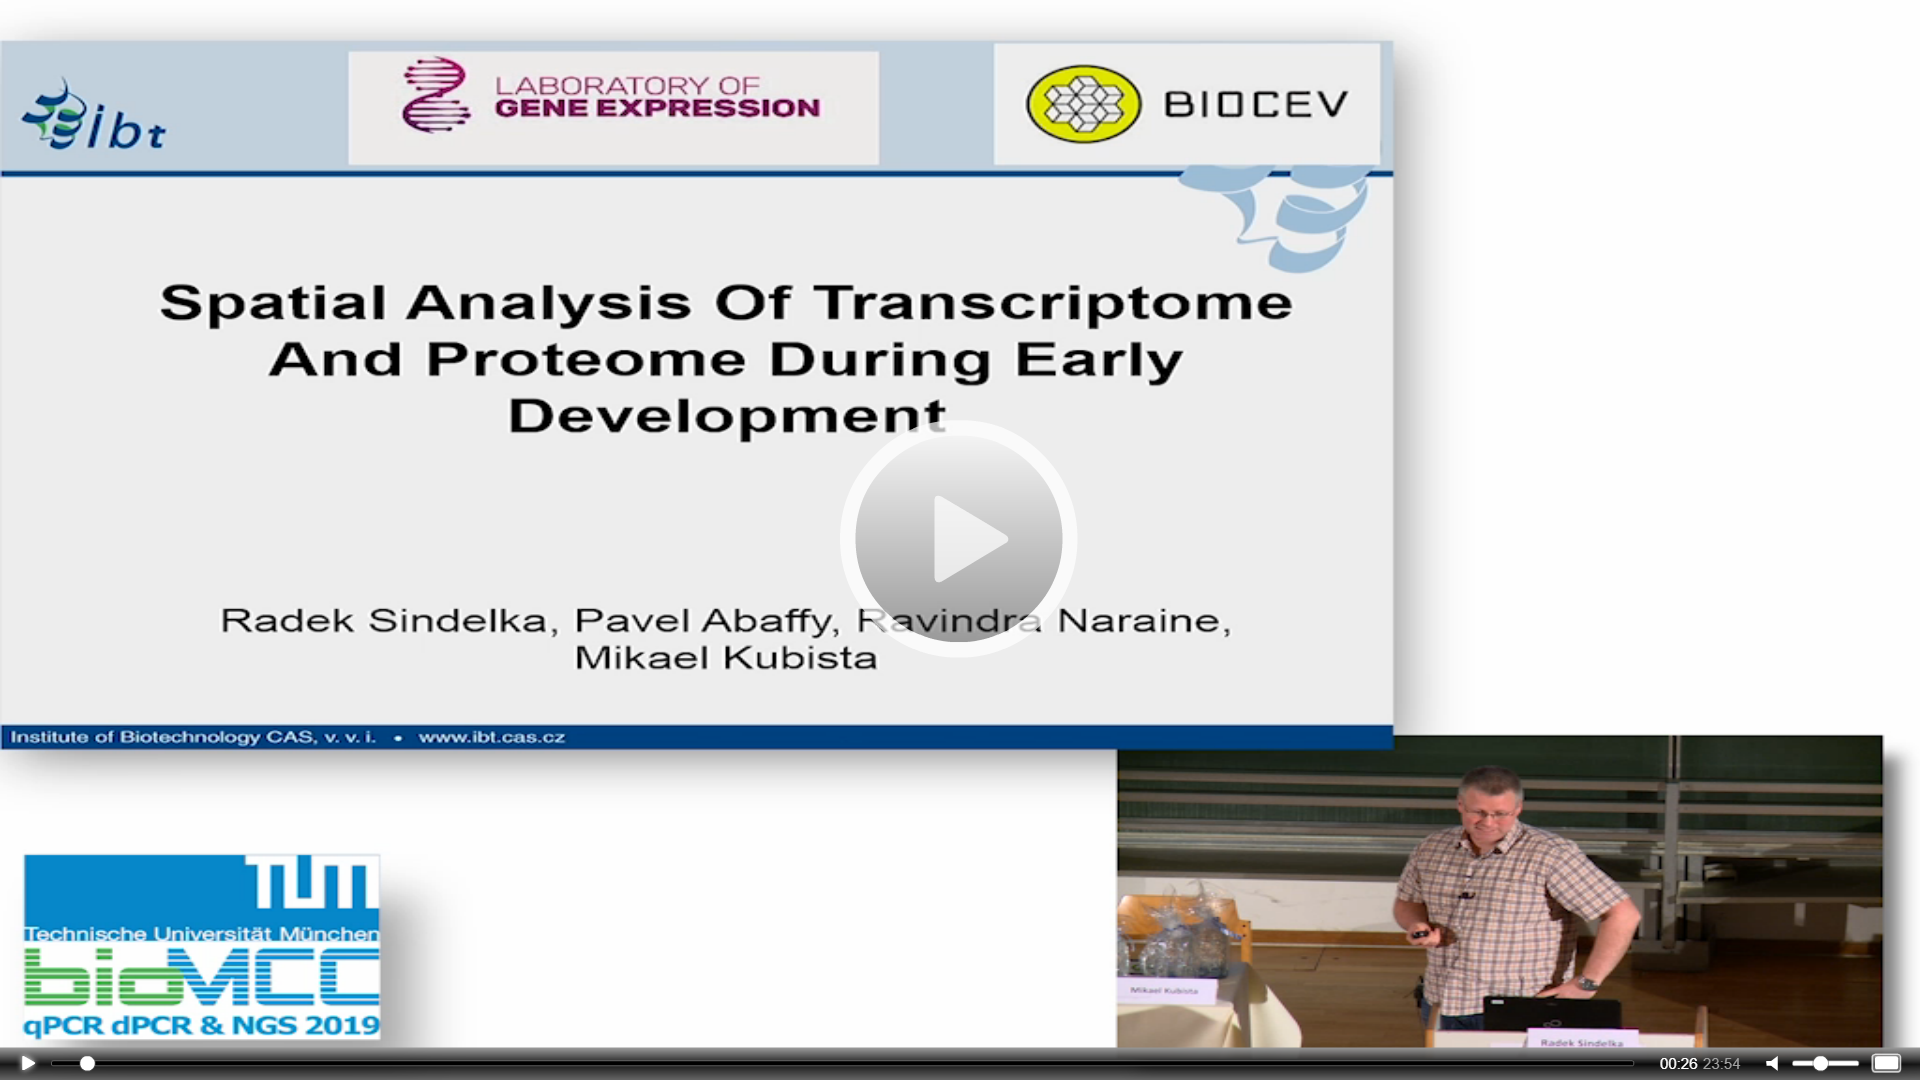 Spatial Analysis Of Transcriptome And Proteome During Early Development